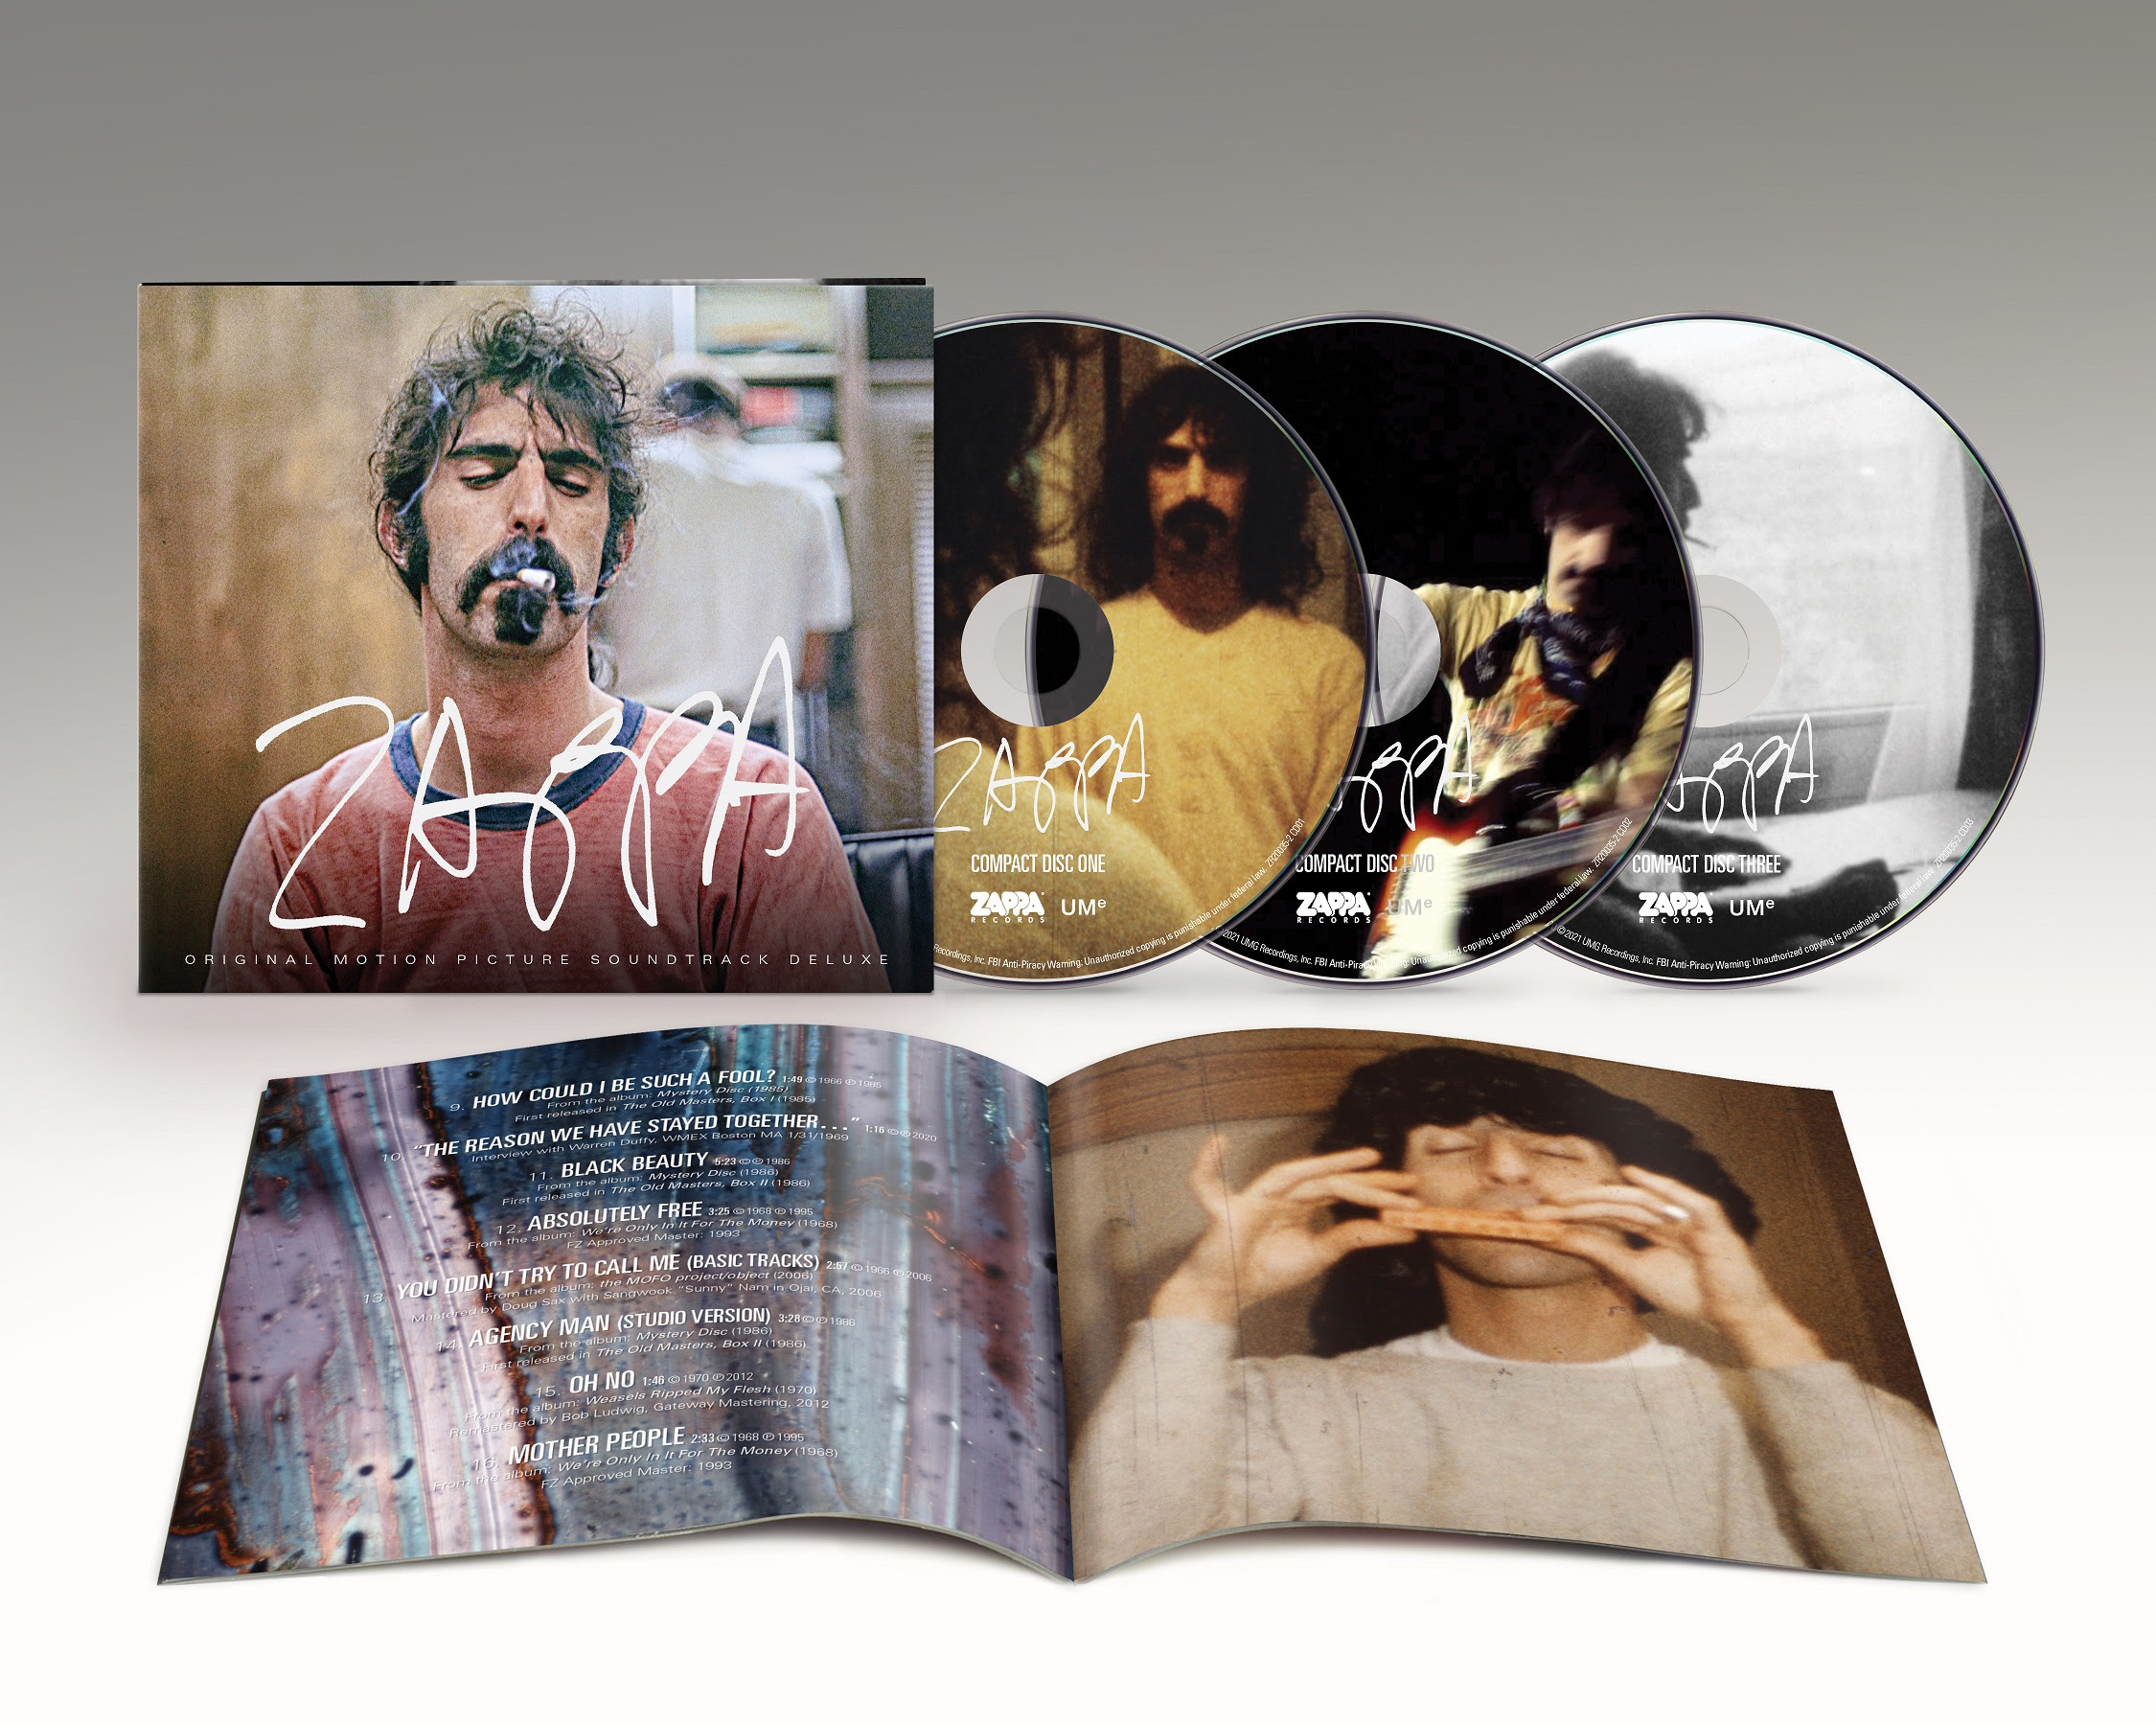 'Zappa Original Motion Picture Soundtrack' Available Now As 3CD Deluxe Edition Via Zappa Records/UMe